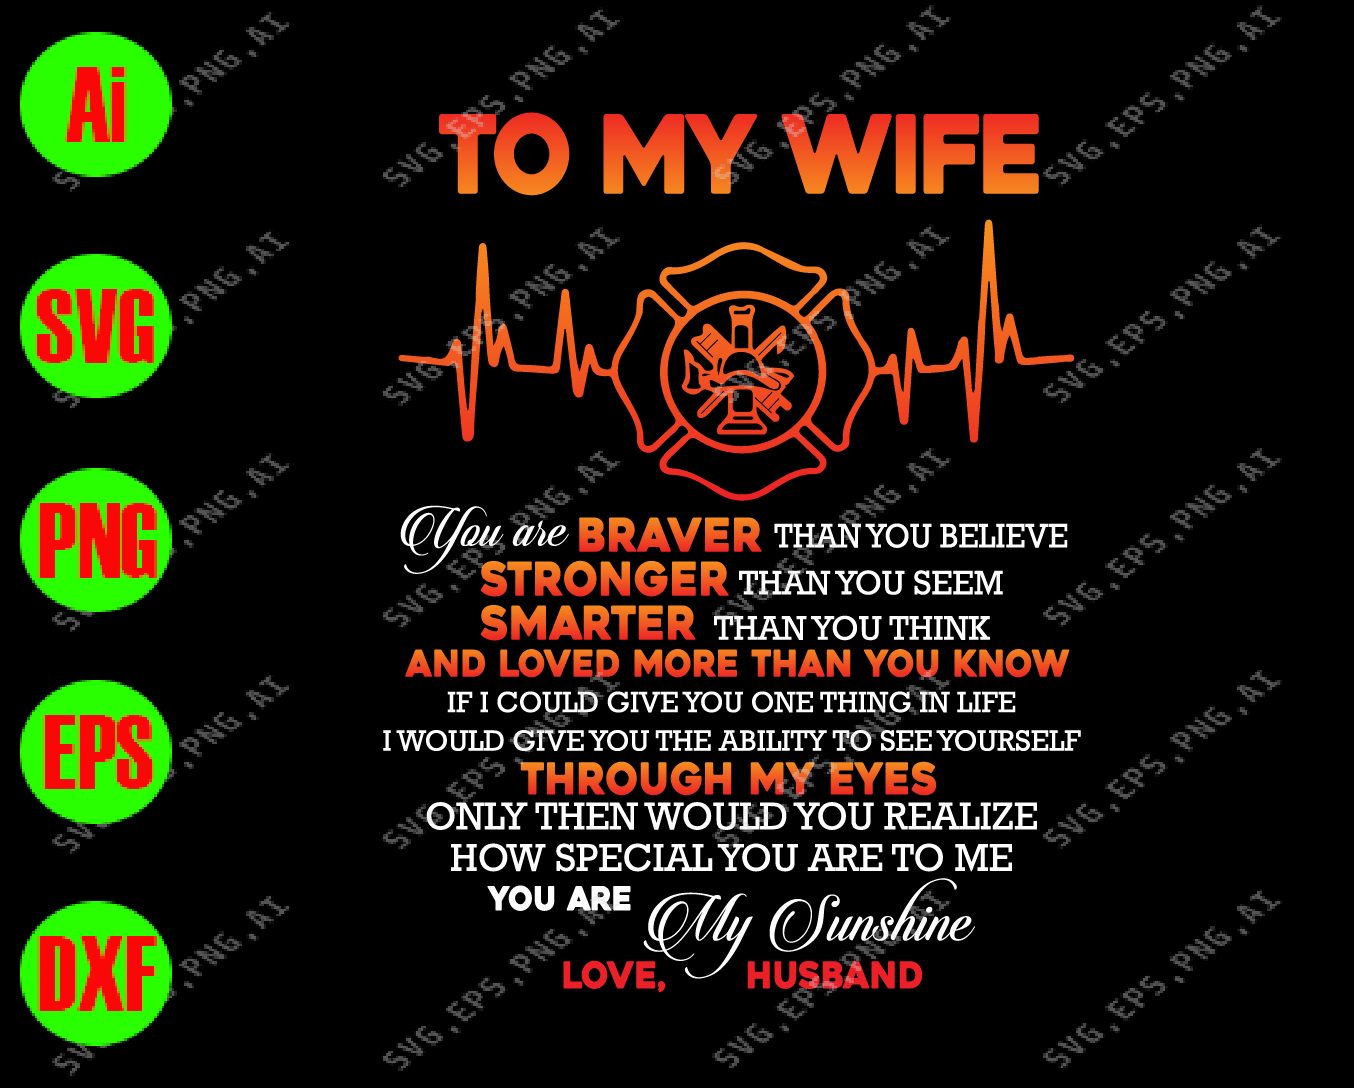 Is stronger me my wife than My wife